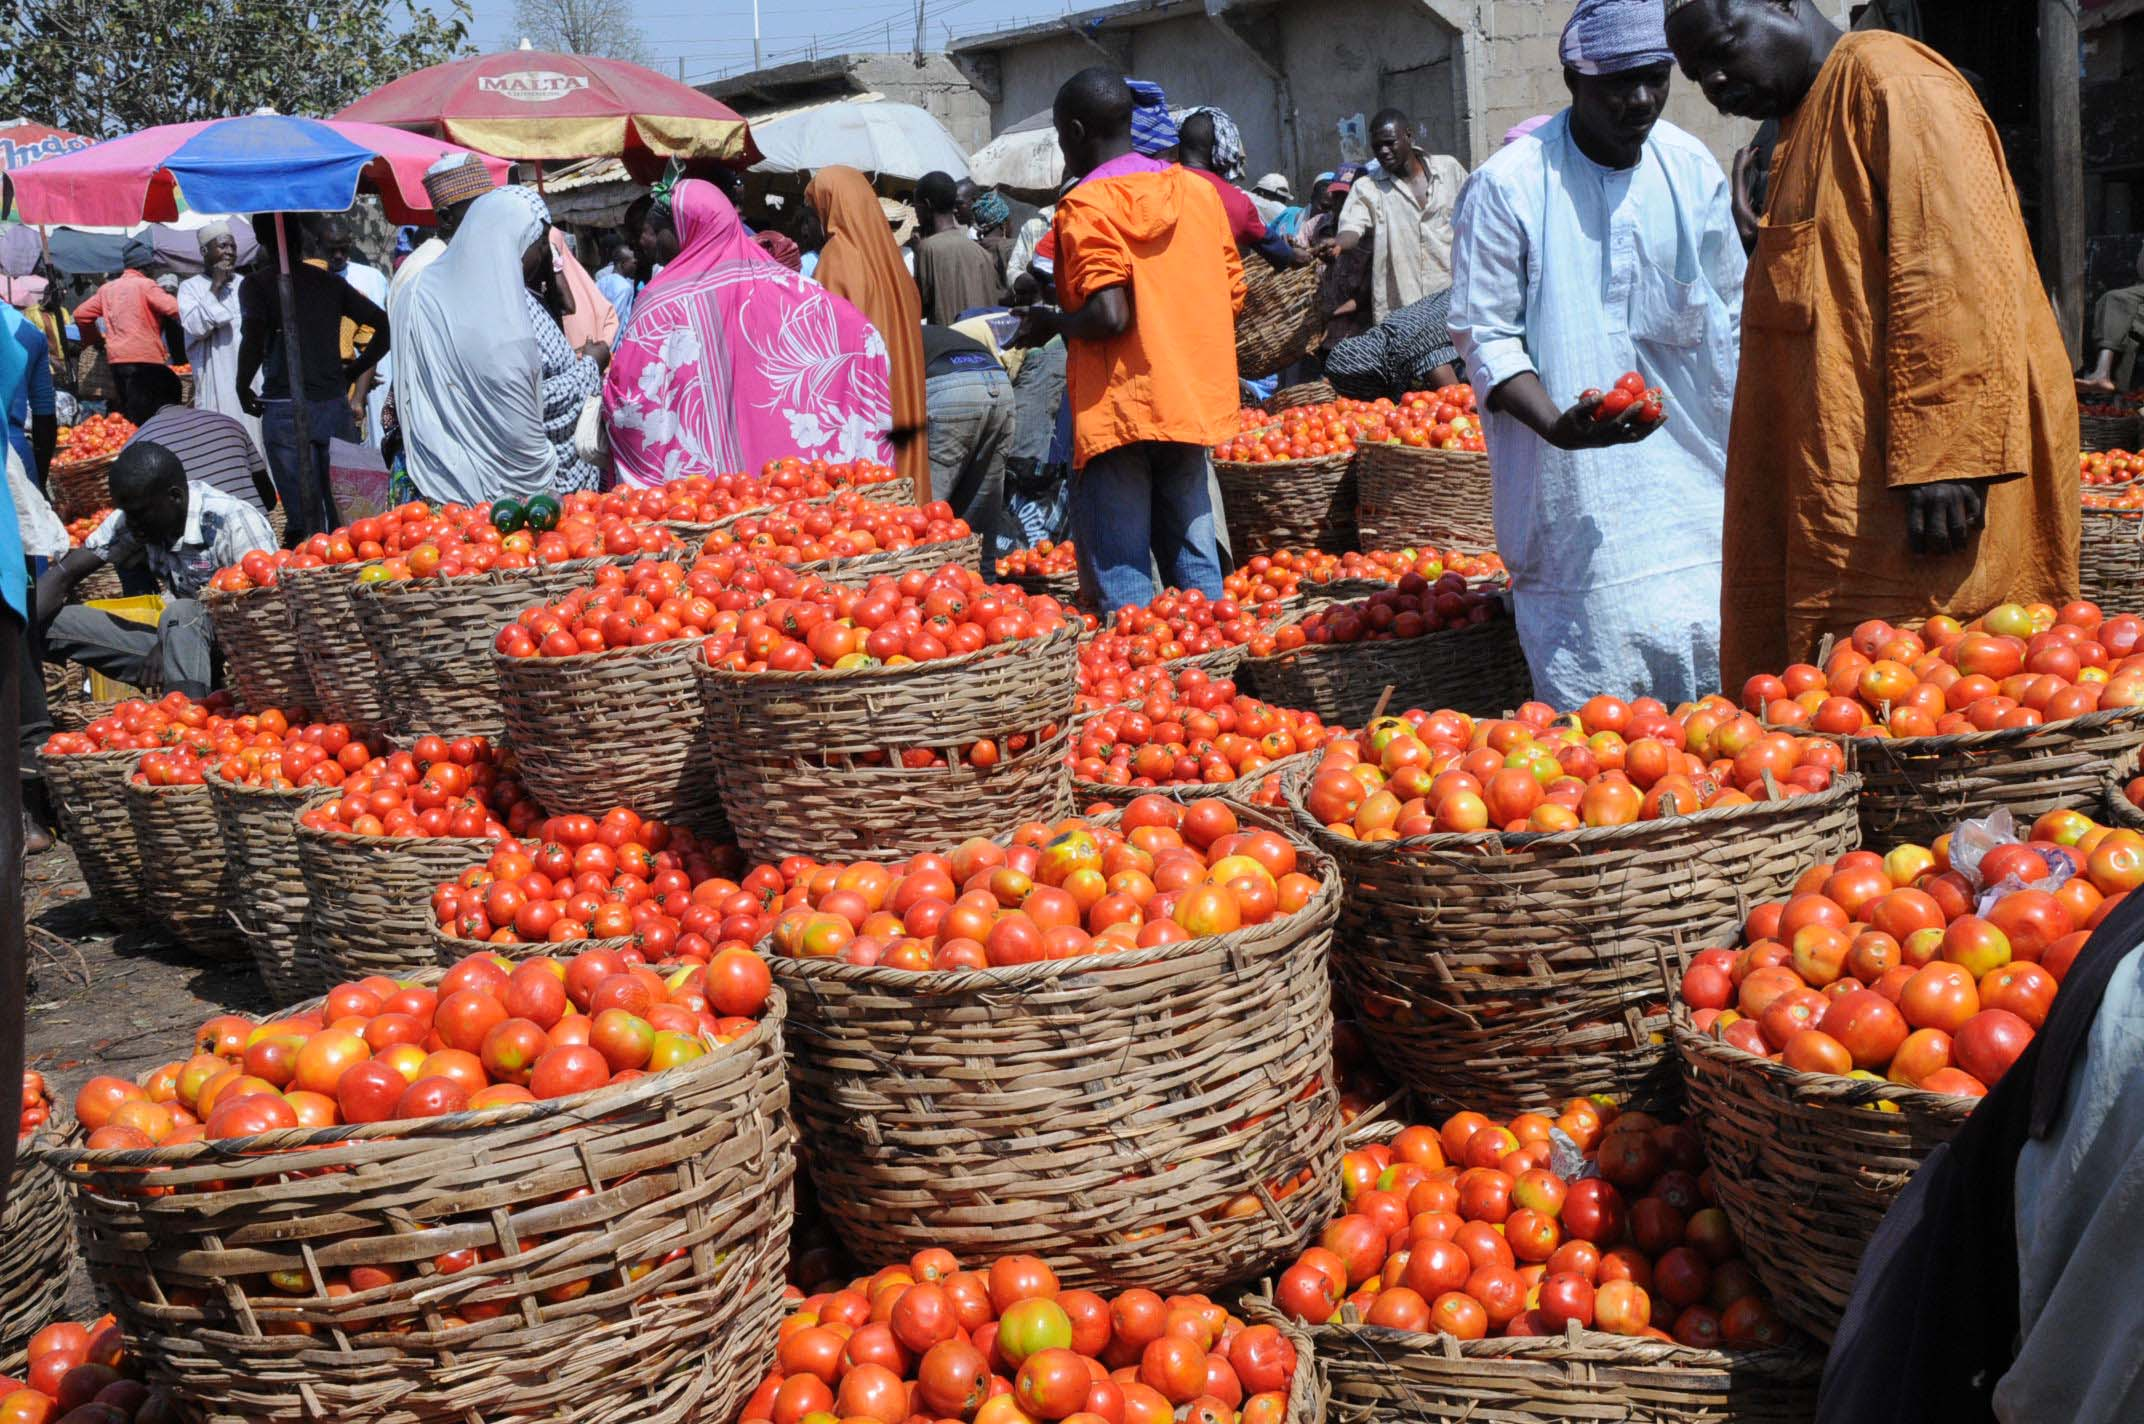 PIC.23. TOMATOES DISPLAYED AT THE ABUBAKAR GUMI CENTRAL MARKET IN KADUNA MONDAY (23/12/13)